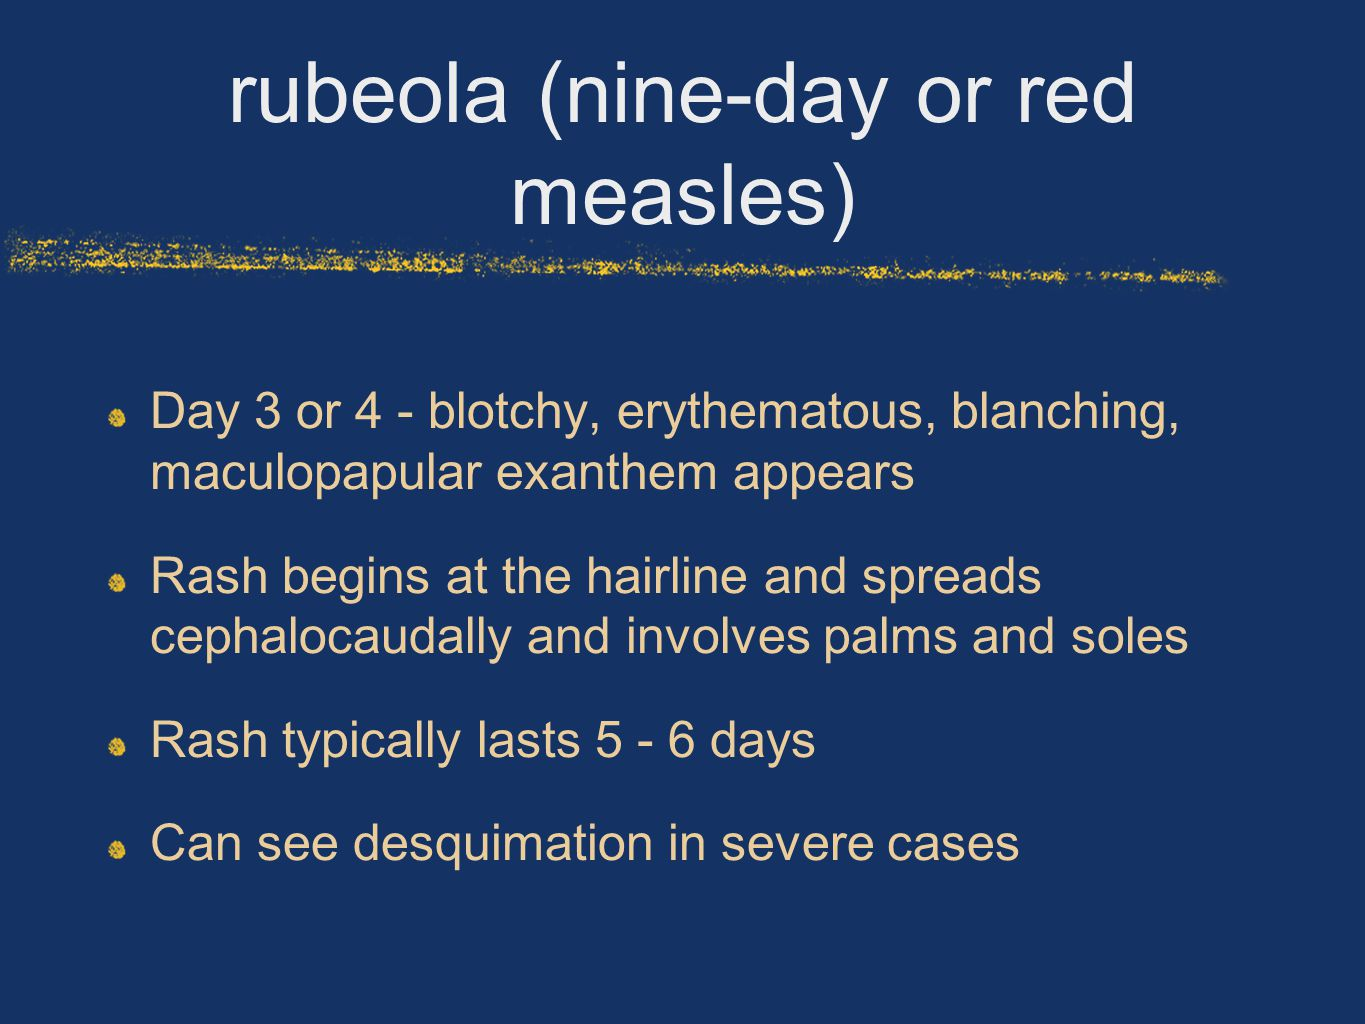 rubeola (nine-day or red measles)